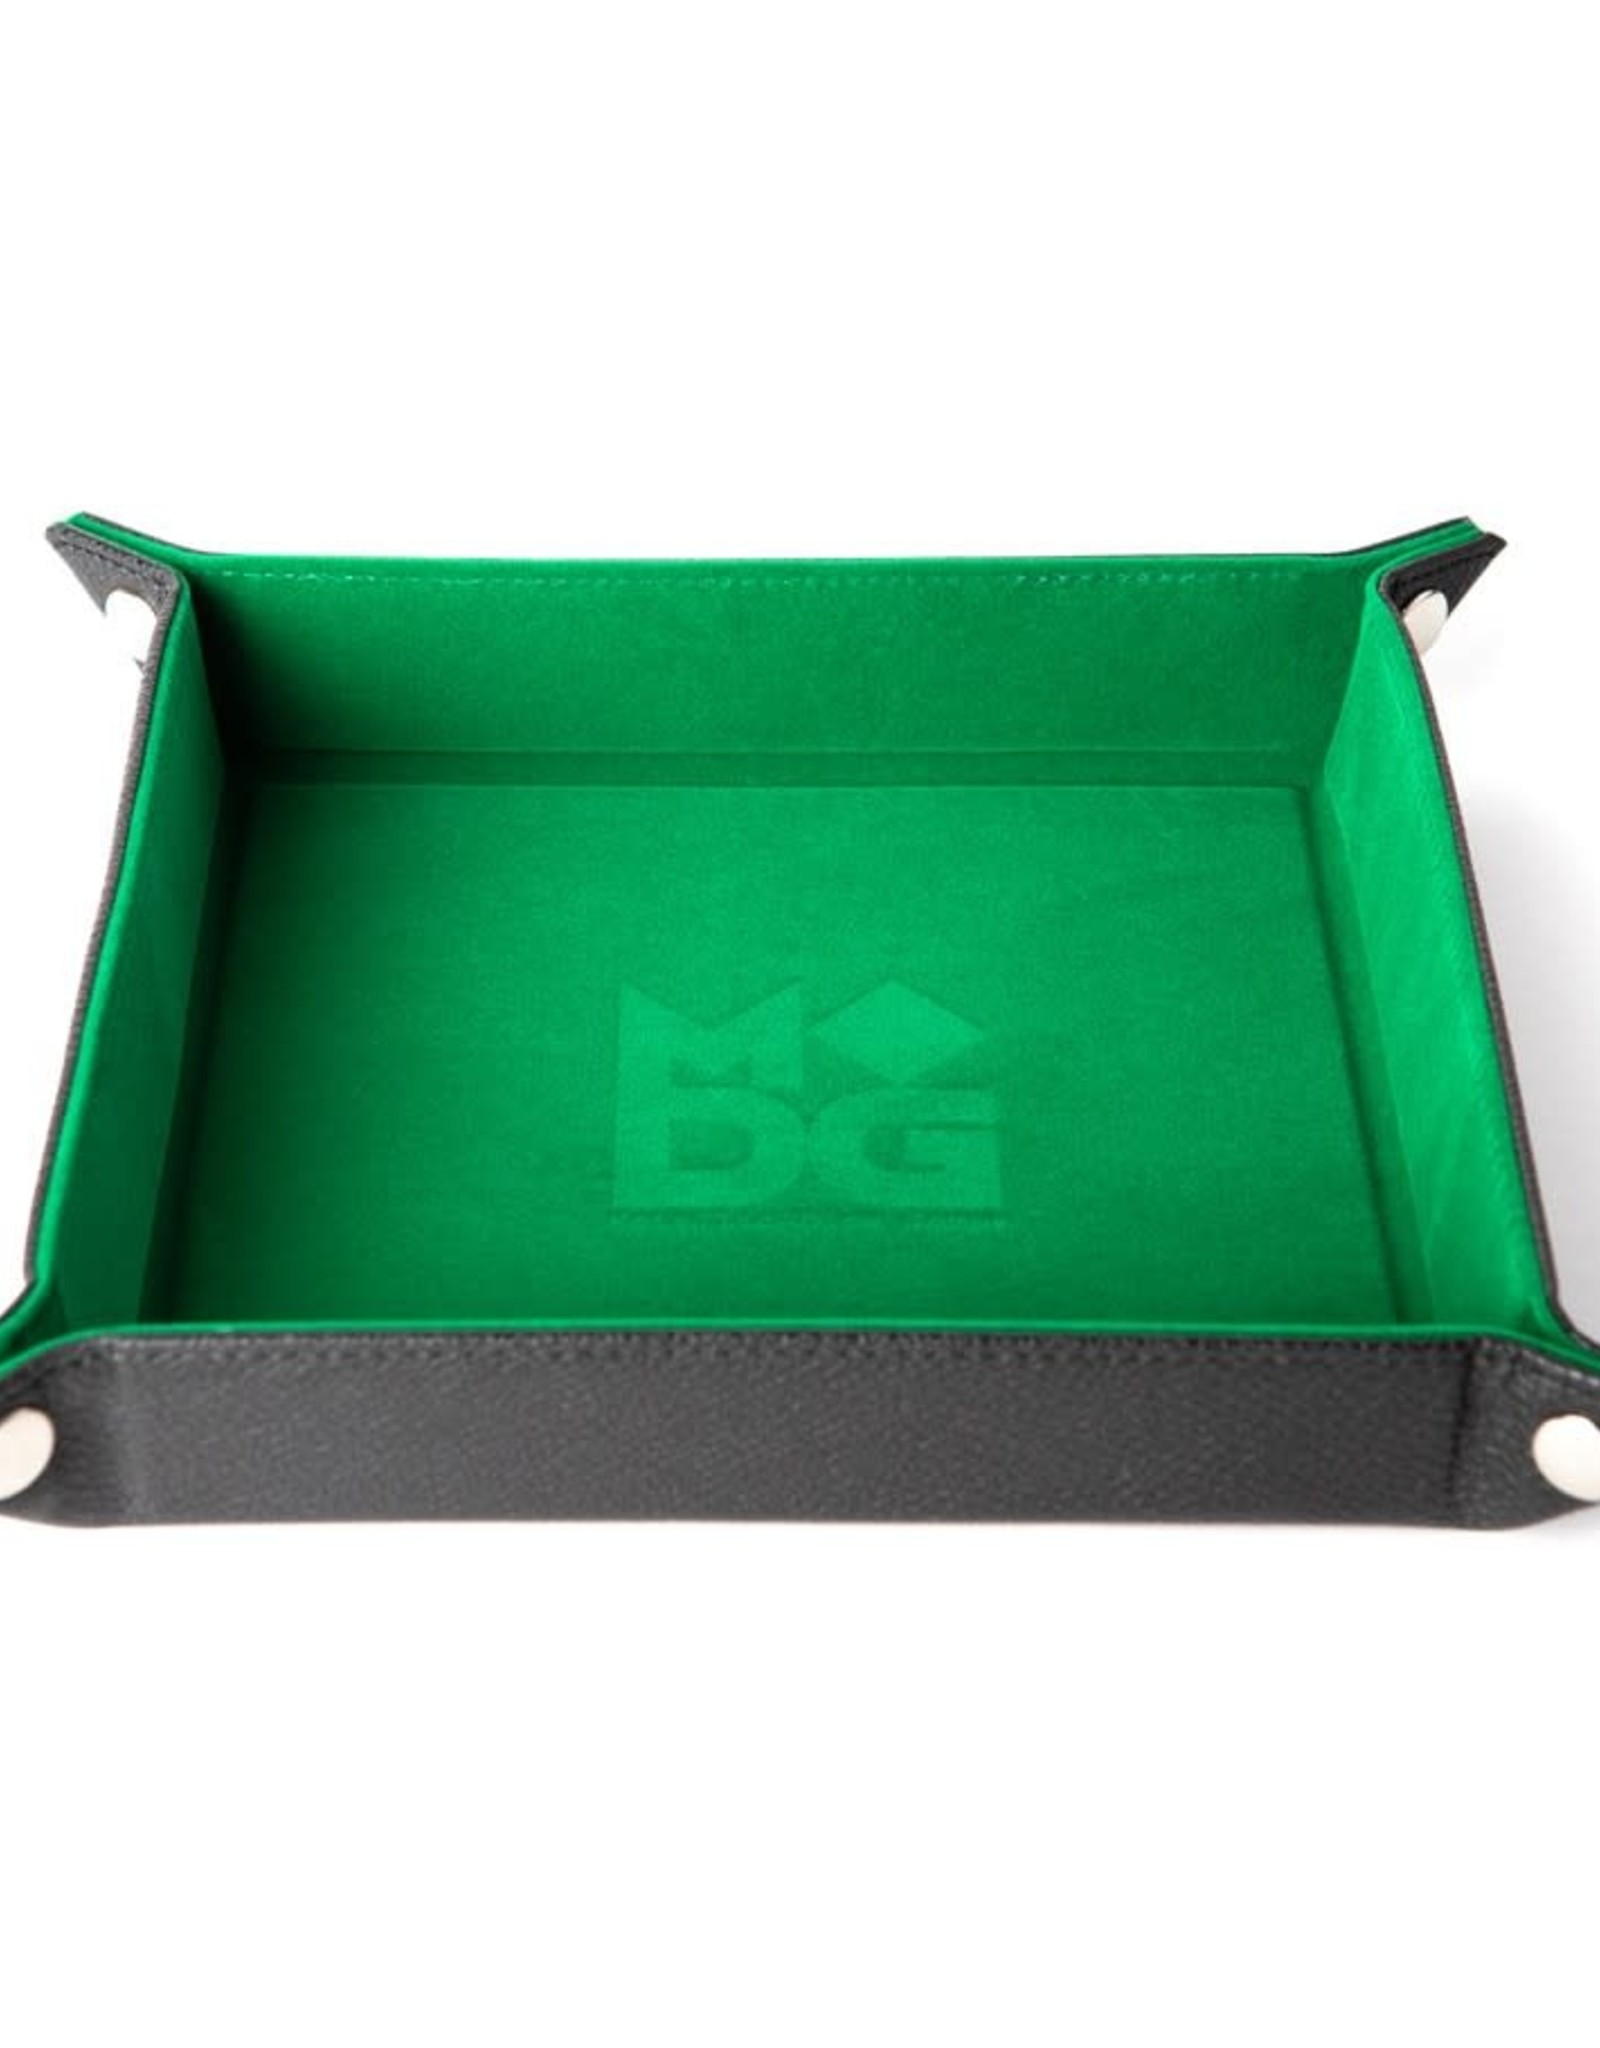 Metallic Dice Games Dice Tray: Velvet Folding with Leather Backing Green